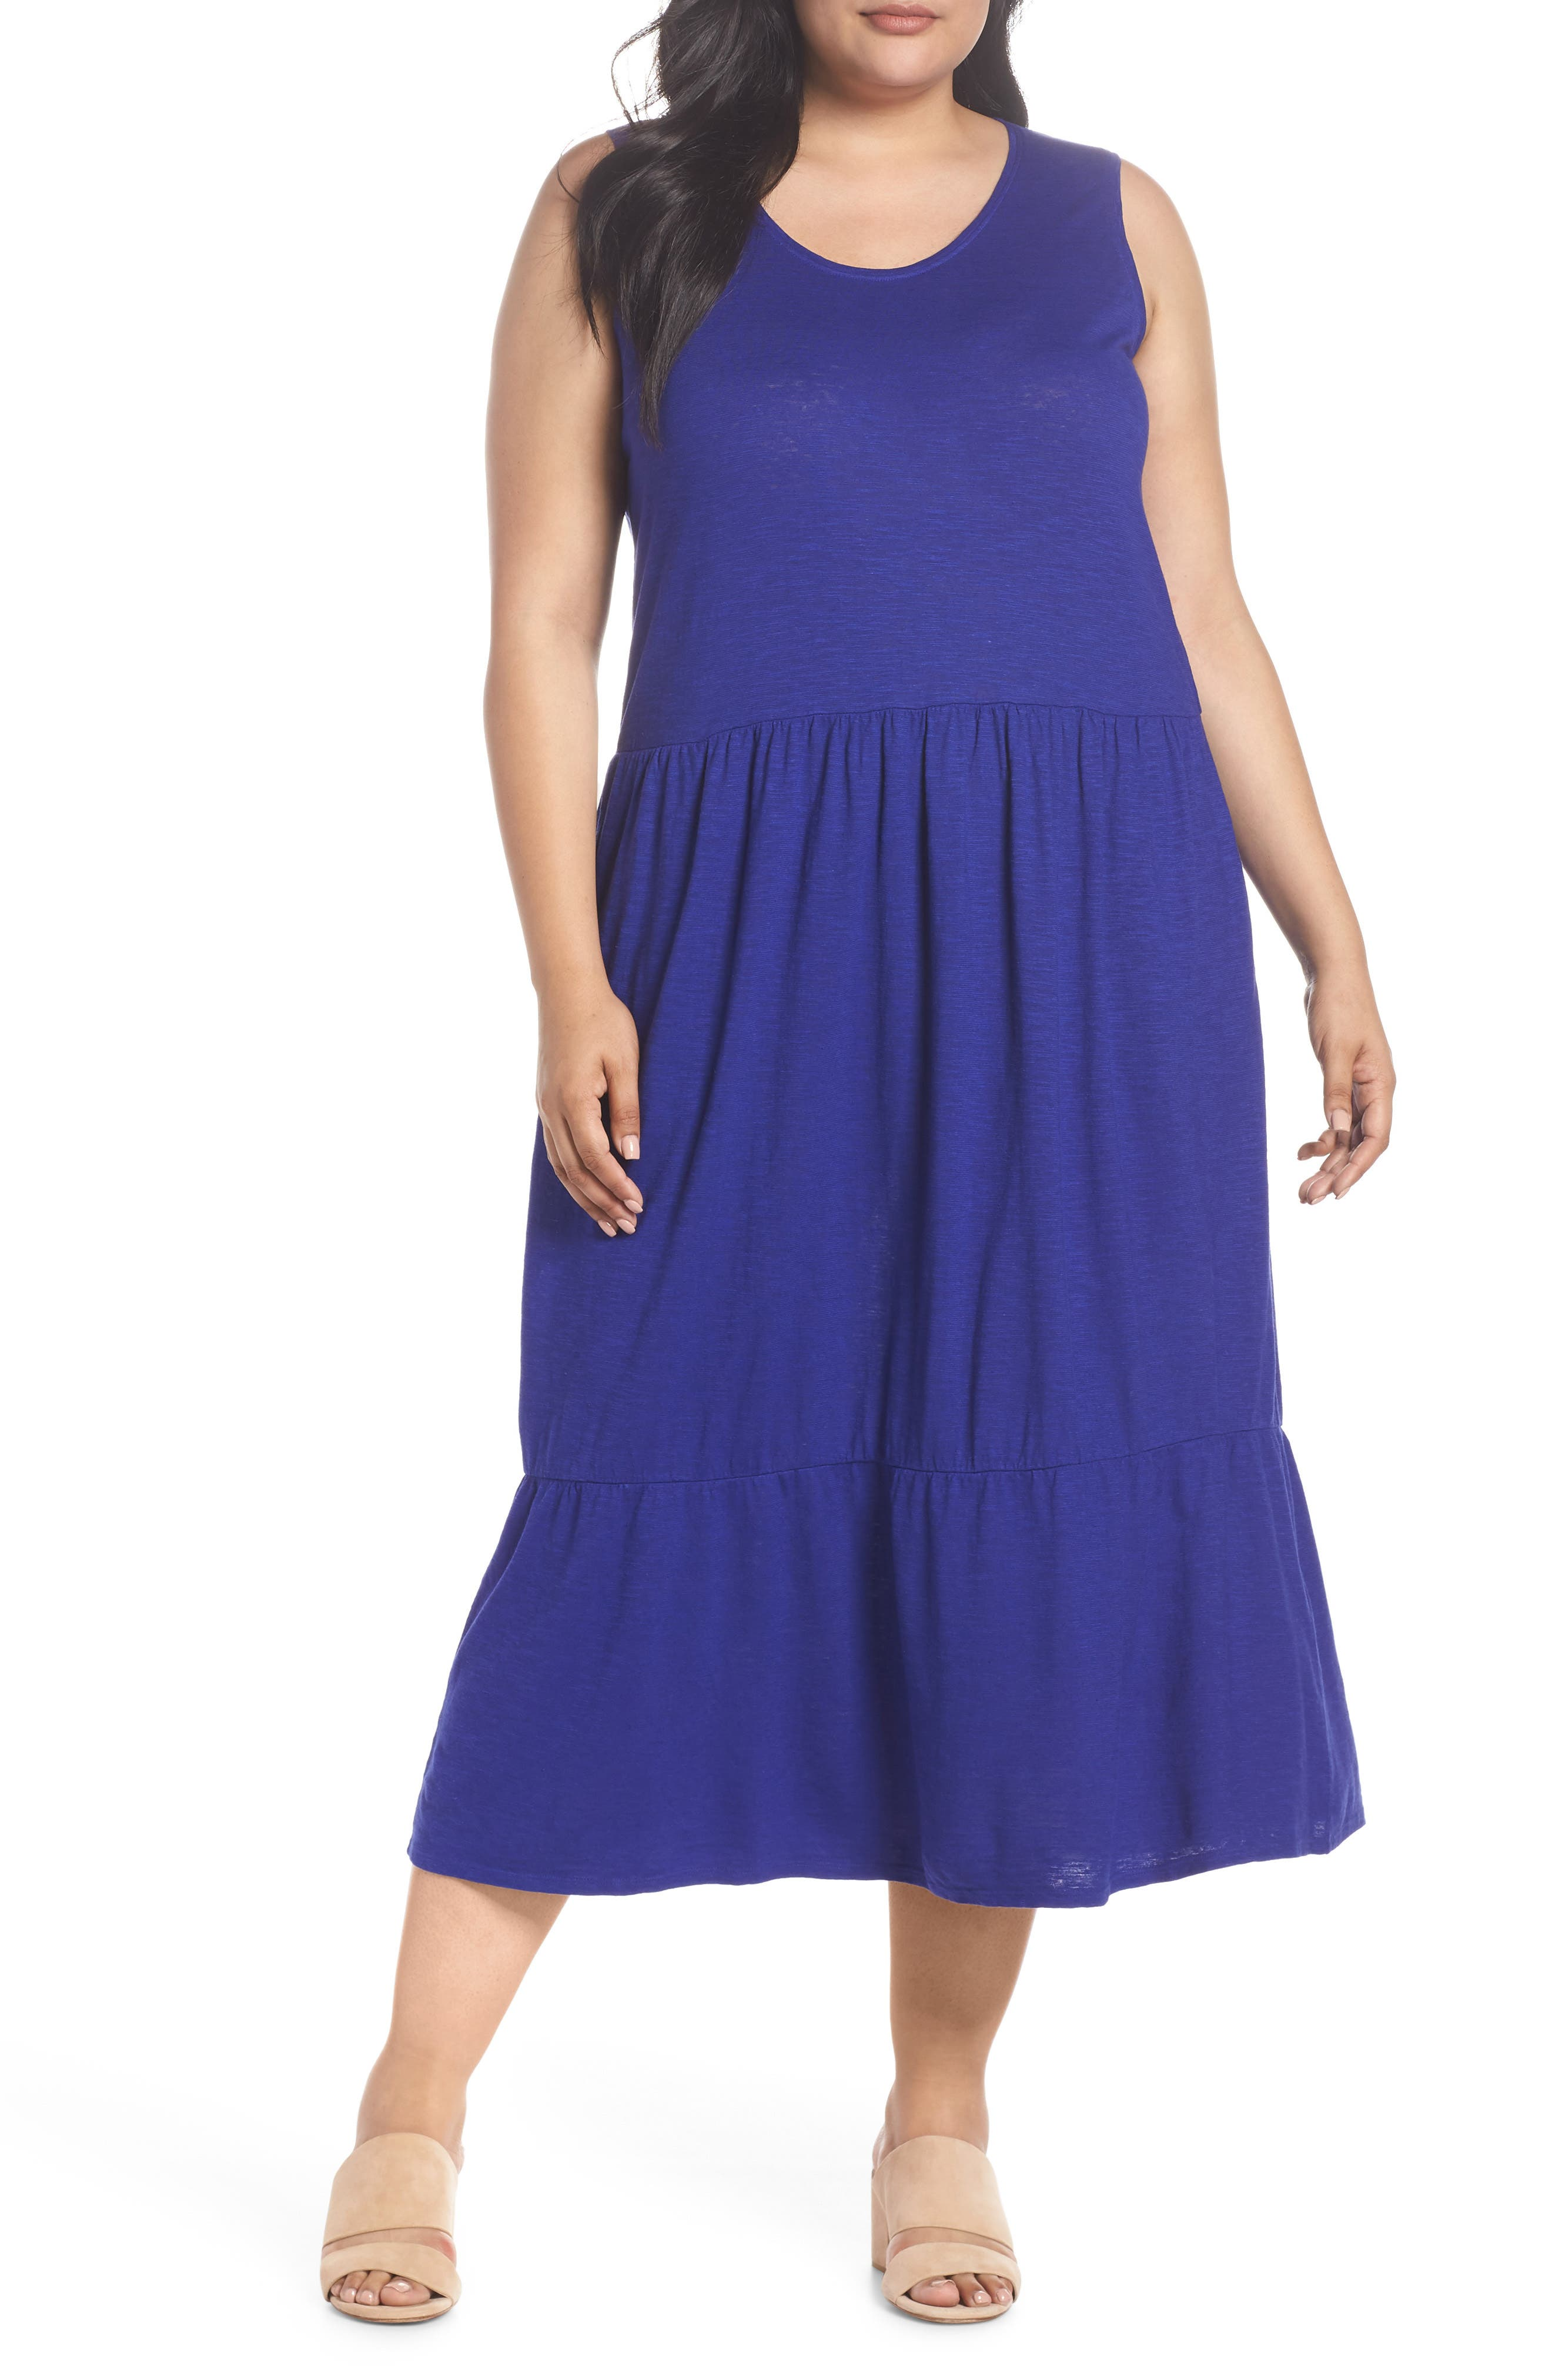 Scooped Neck Hemp & Cotton Midi Dress,                         Main,                         color, BLUE VIOLET